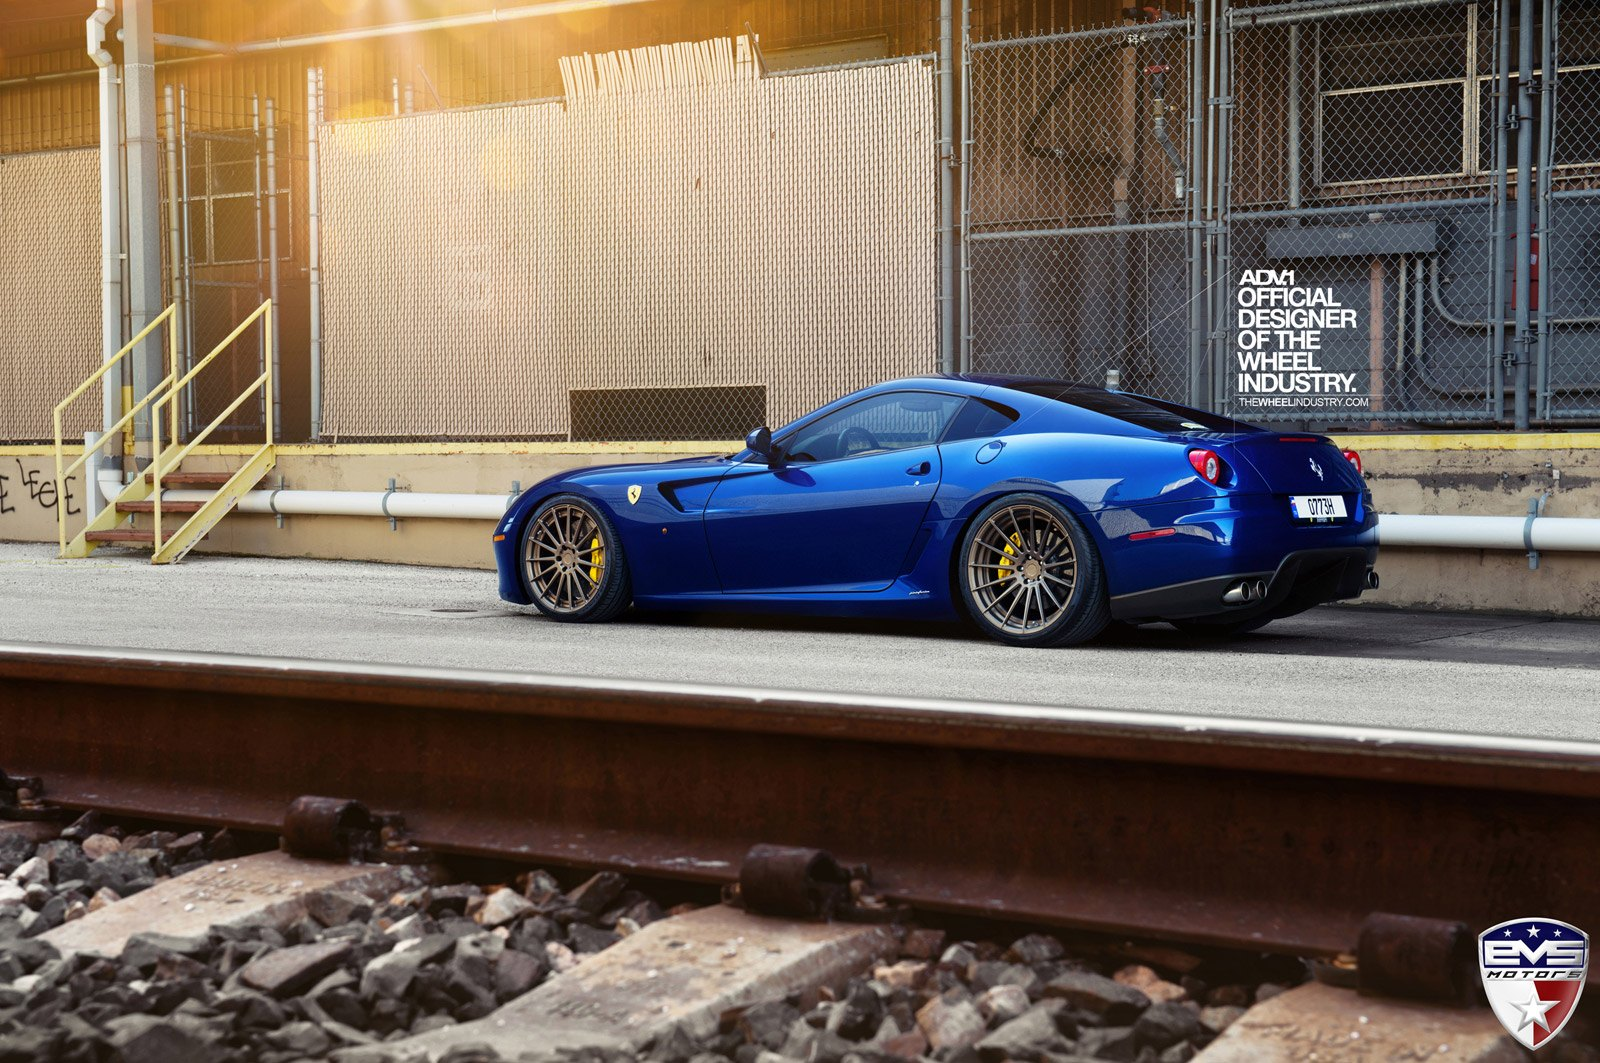 Bronze Luxury Wheels By Adv1 On Glorious Blue Ferrari 599 Carid Com Gallery